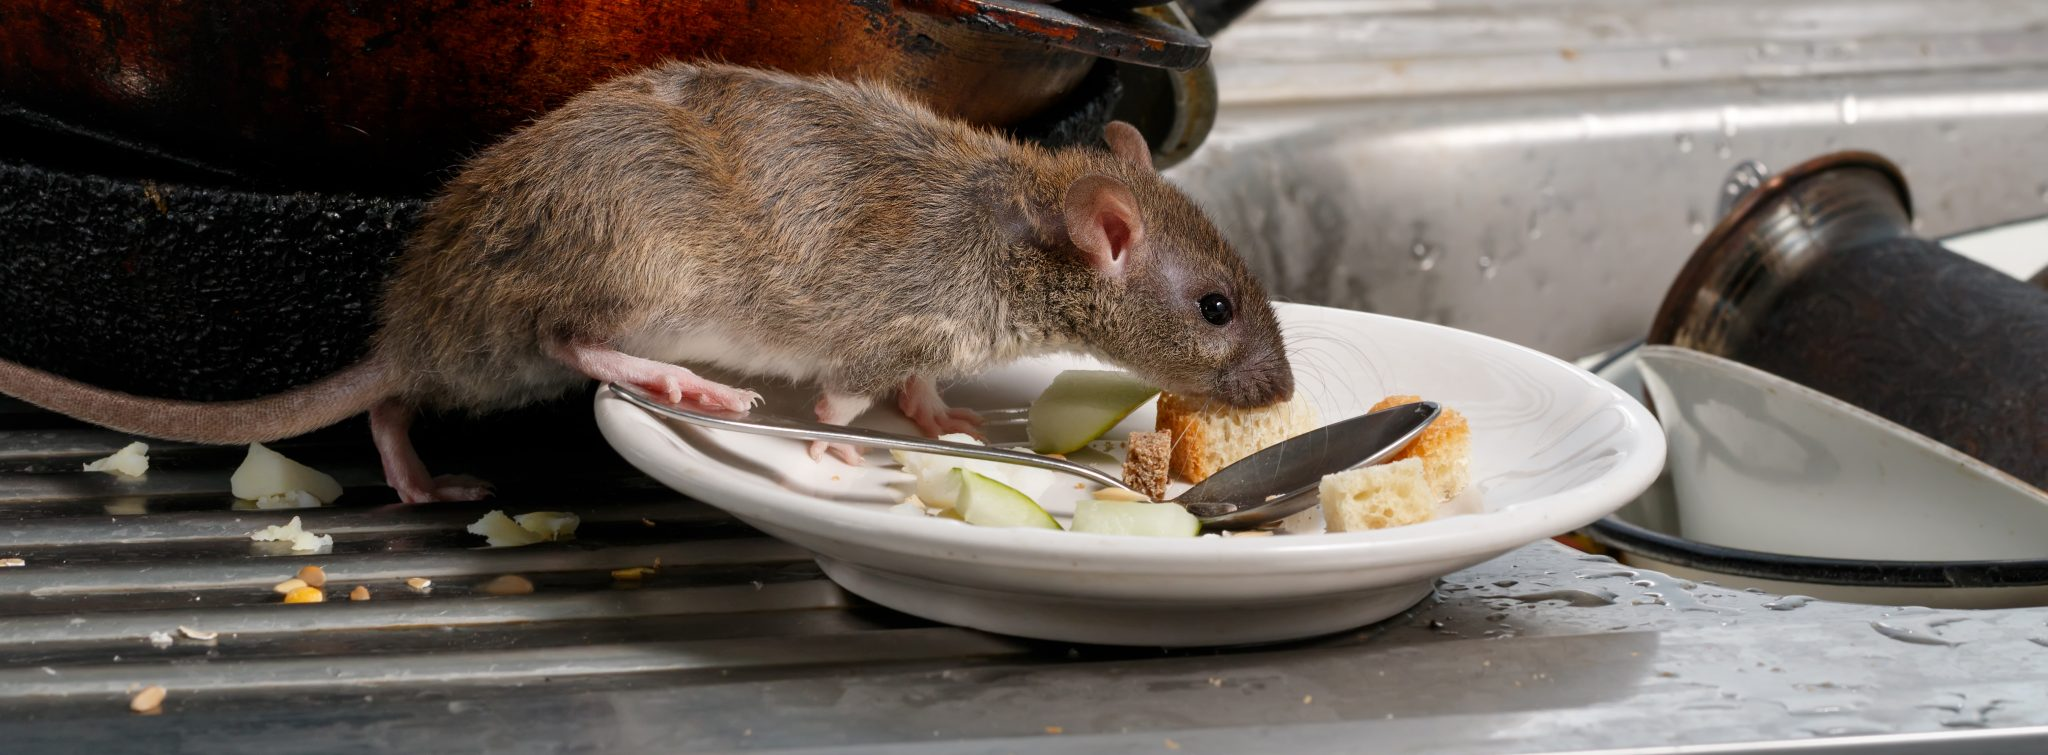 Pest Prevention from a Restaurant Insider – What Could You Be Doing Differently?